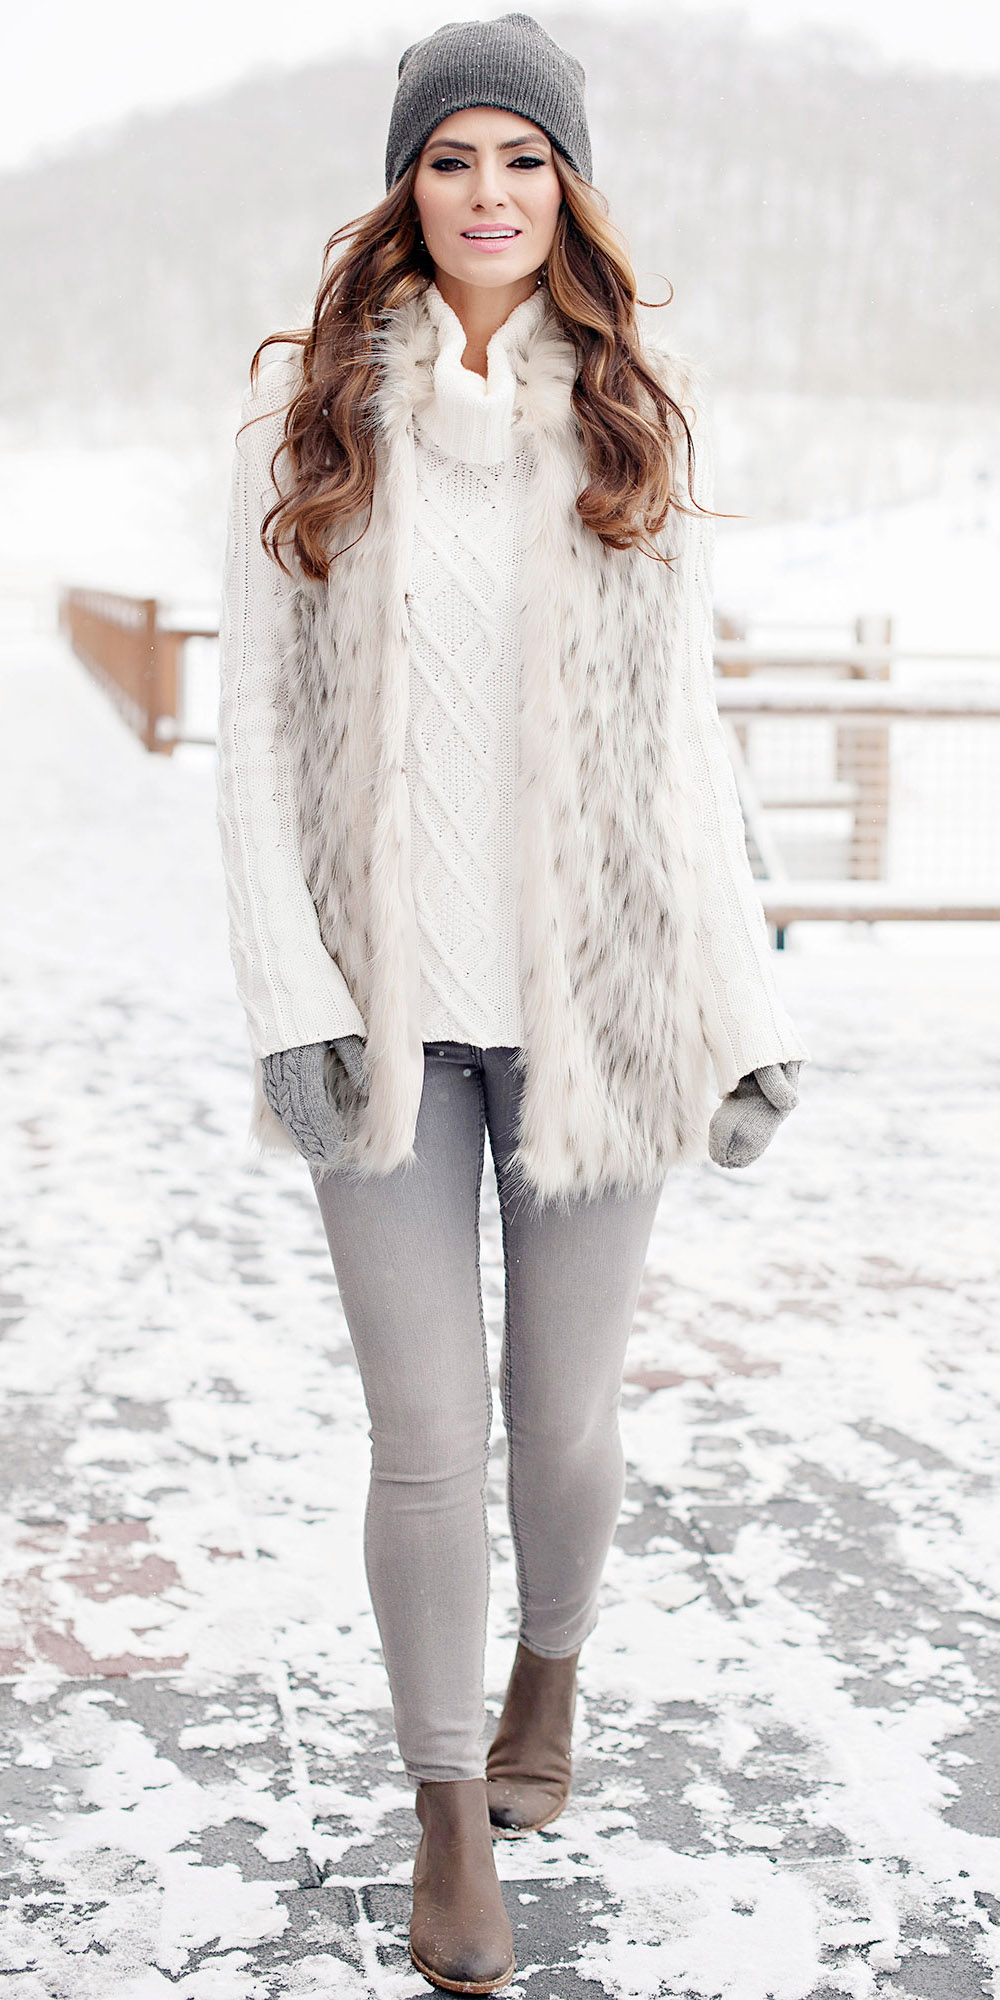 grayl-skinny-jeans-white-sweater-howtowear-fashion-style-outfit-fall-winter-white-vest-fur-turtleneck-cableknit-beanie-brown-shoe-booties-gloves-mono-hairr-lunch.jpg